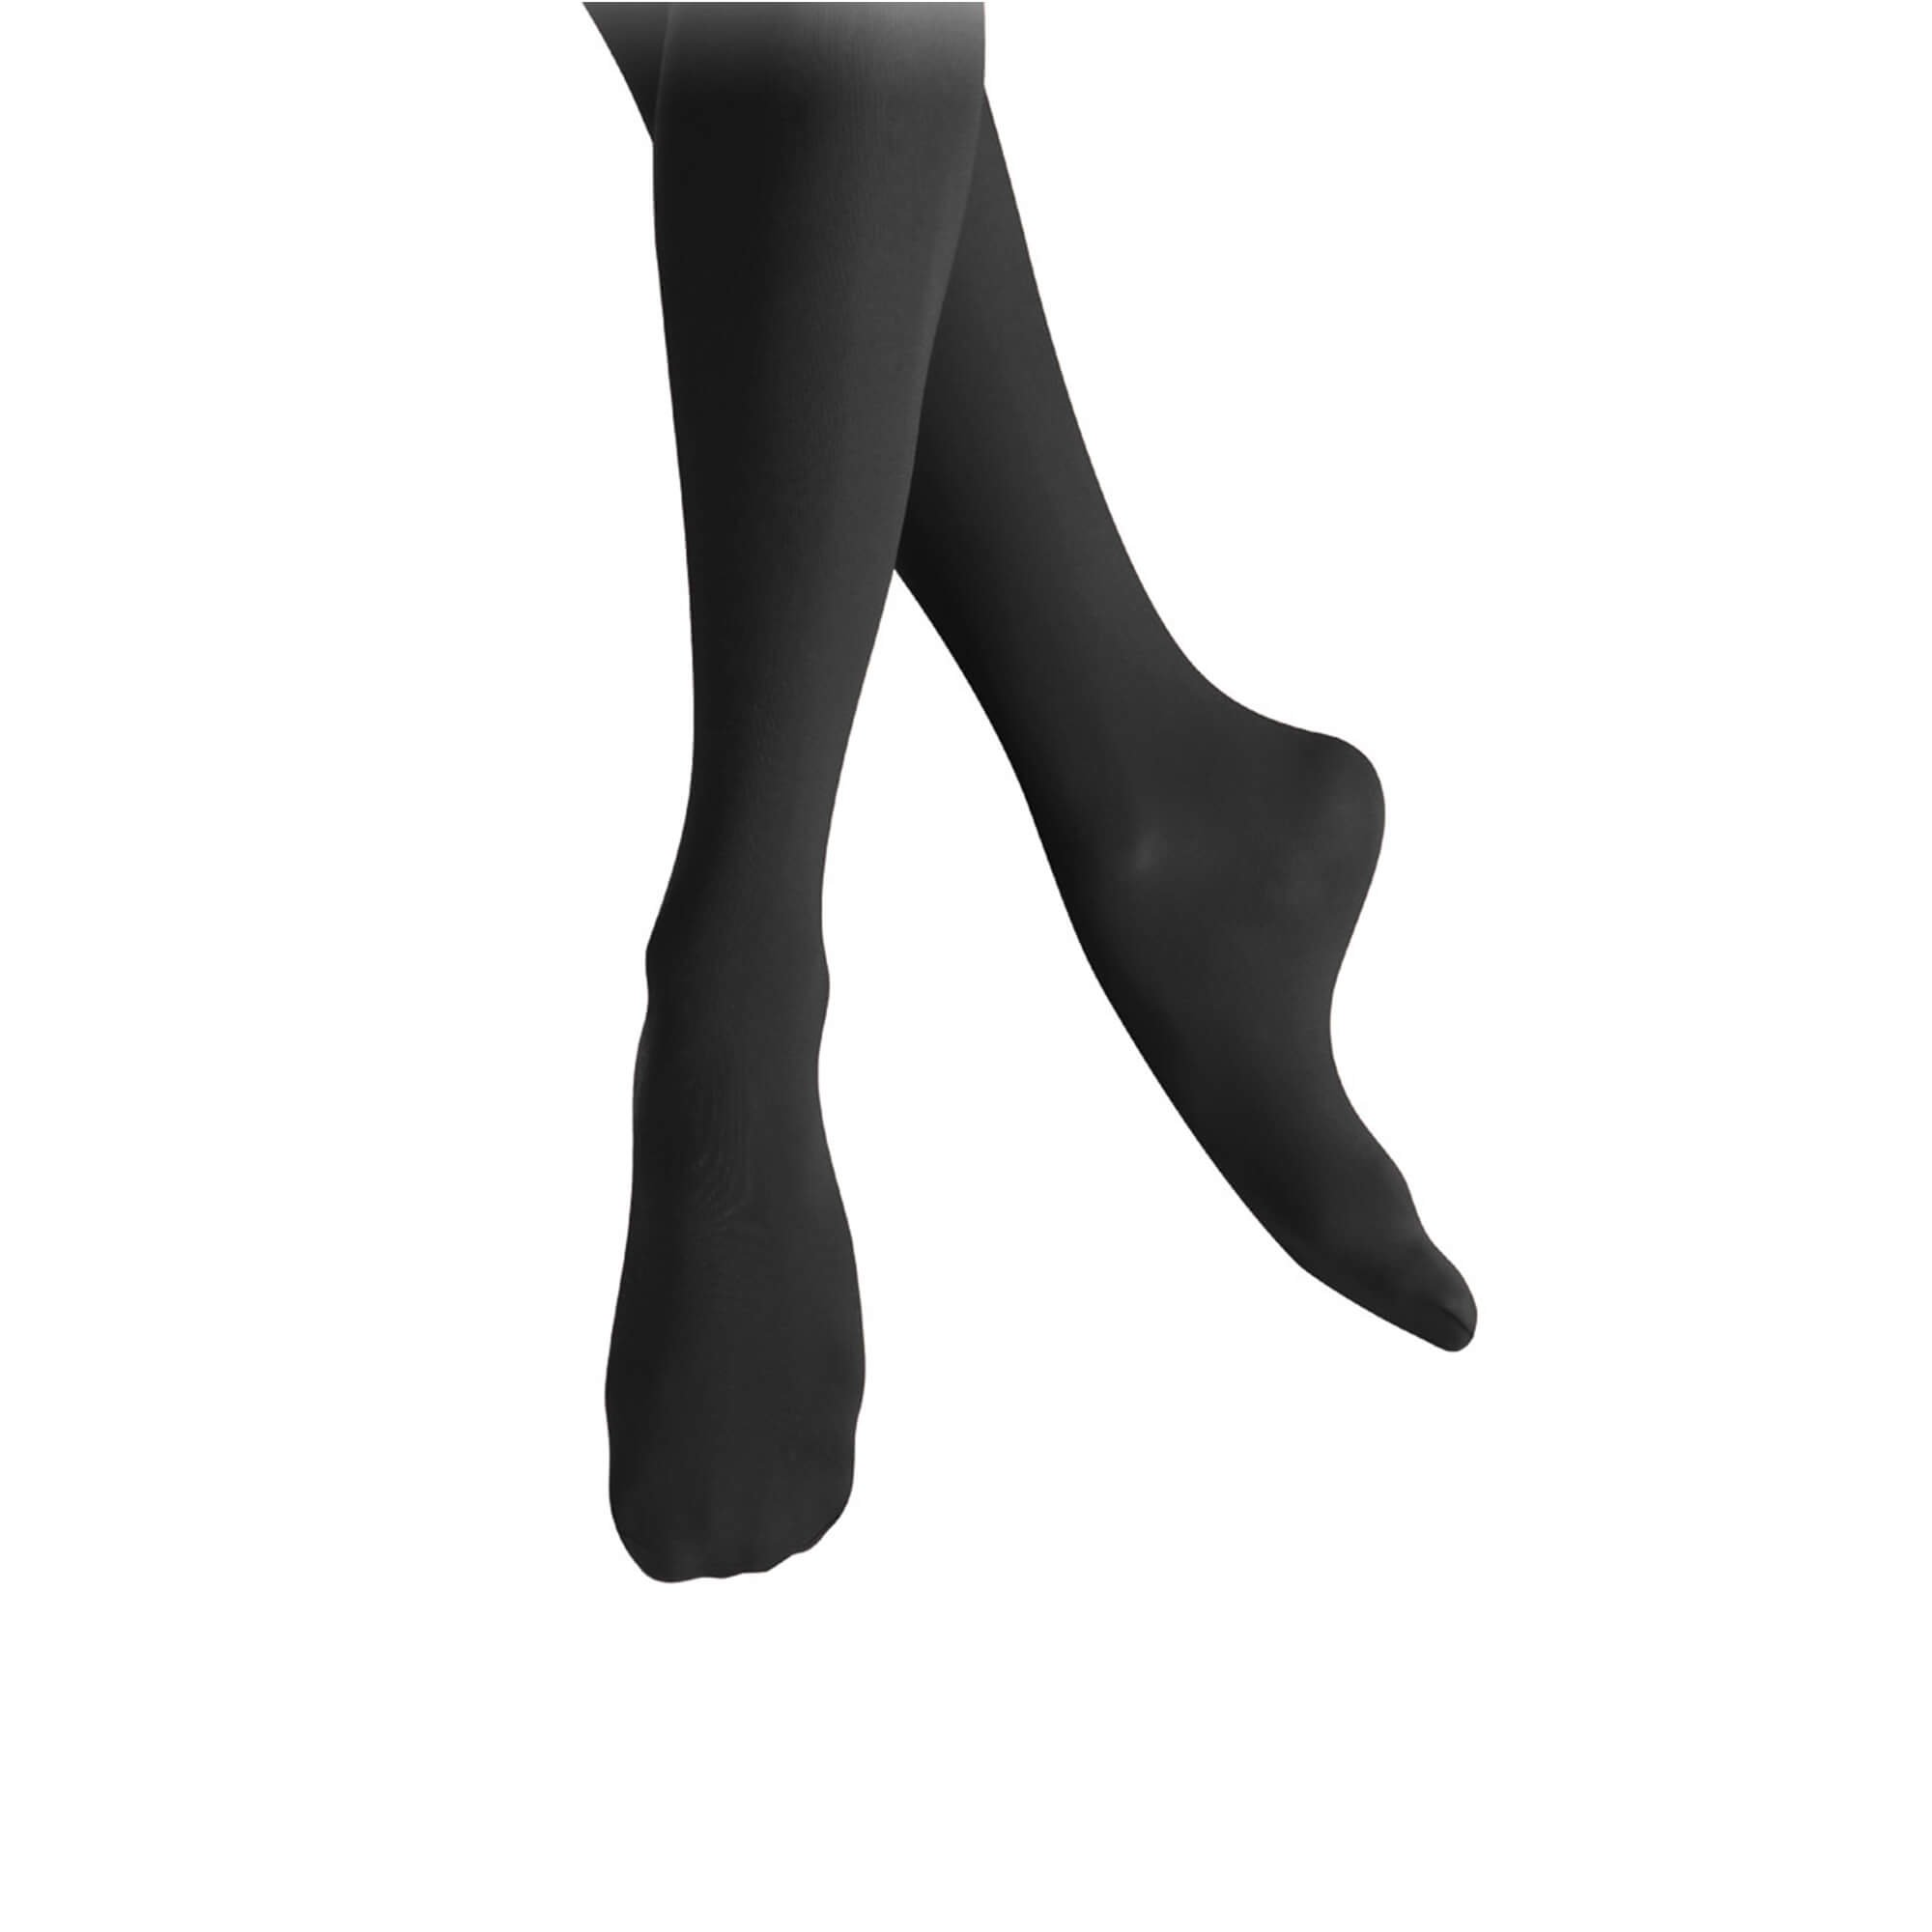 Leos Ladies Firm Fit Convertible Supplex Tights